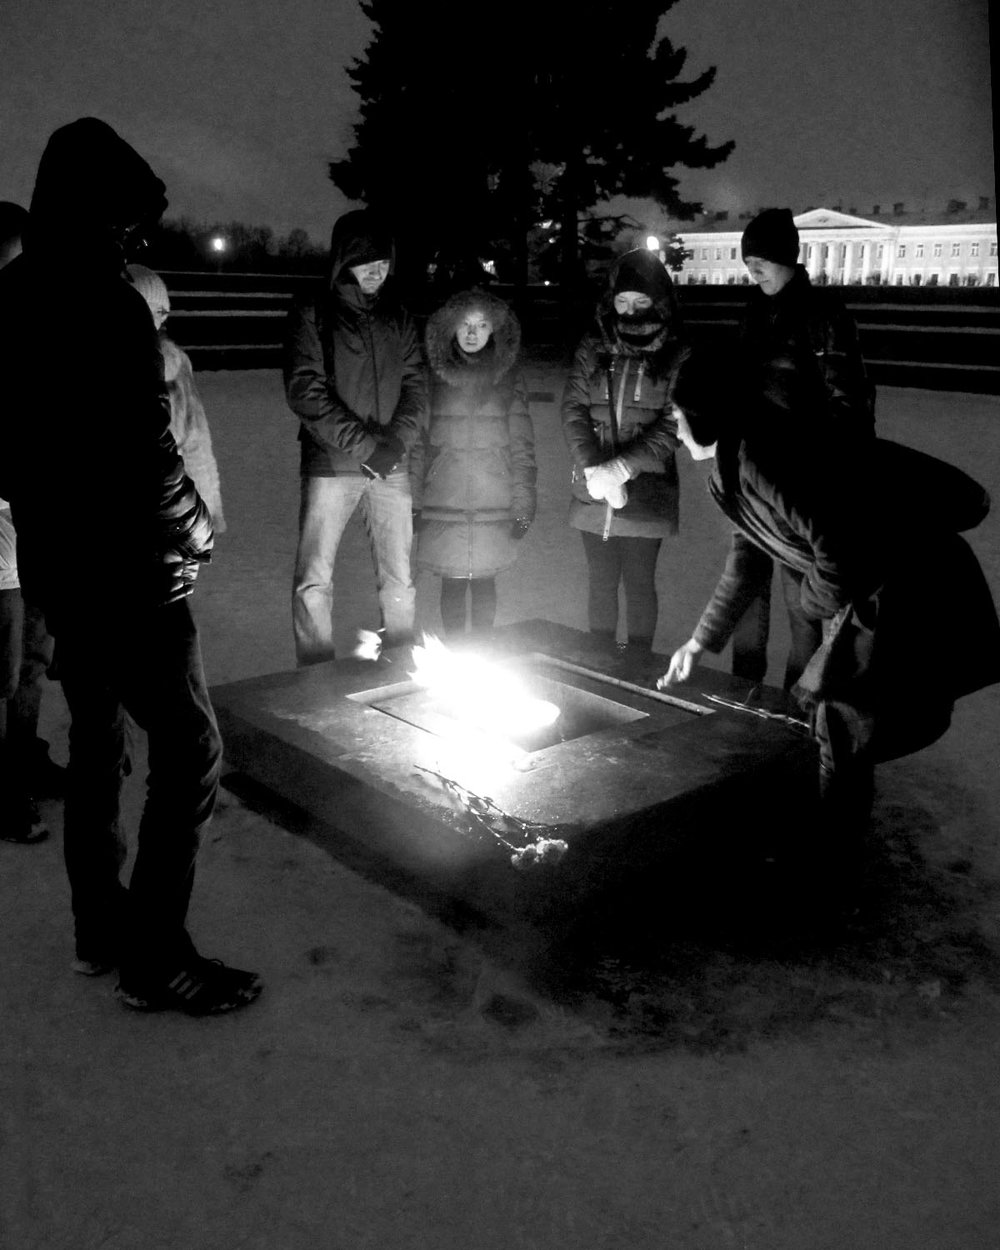 Eternal_Flame_Night_BW_St_Petersburg_Russia.jpg